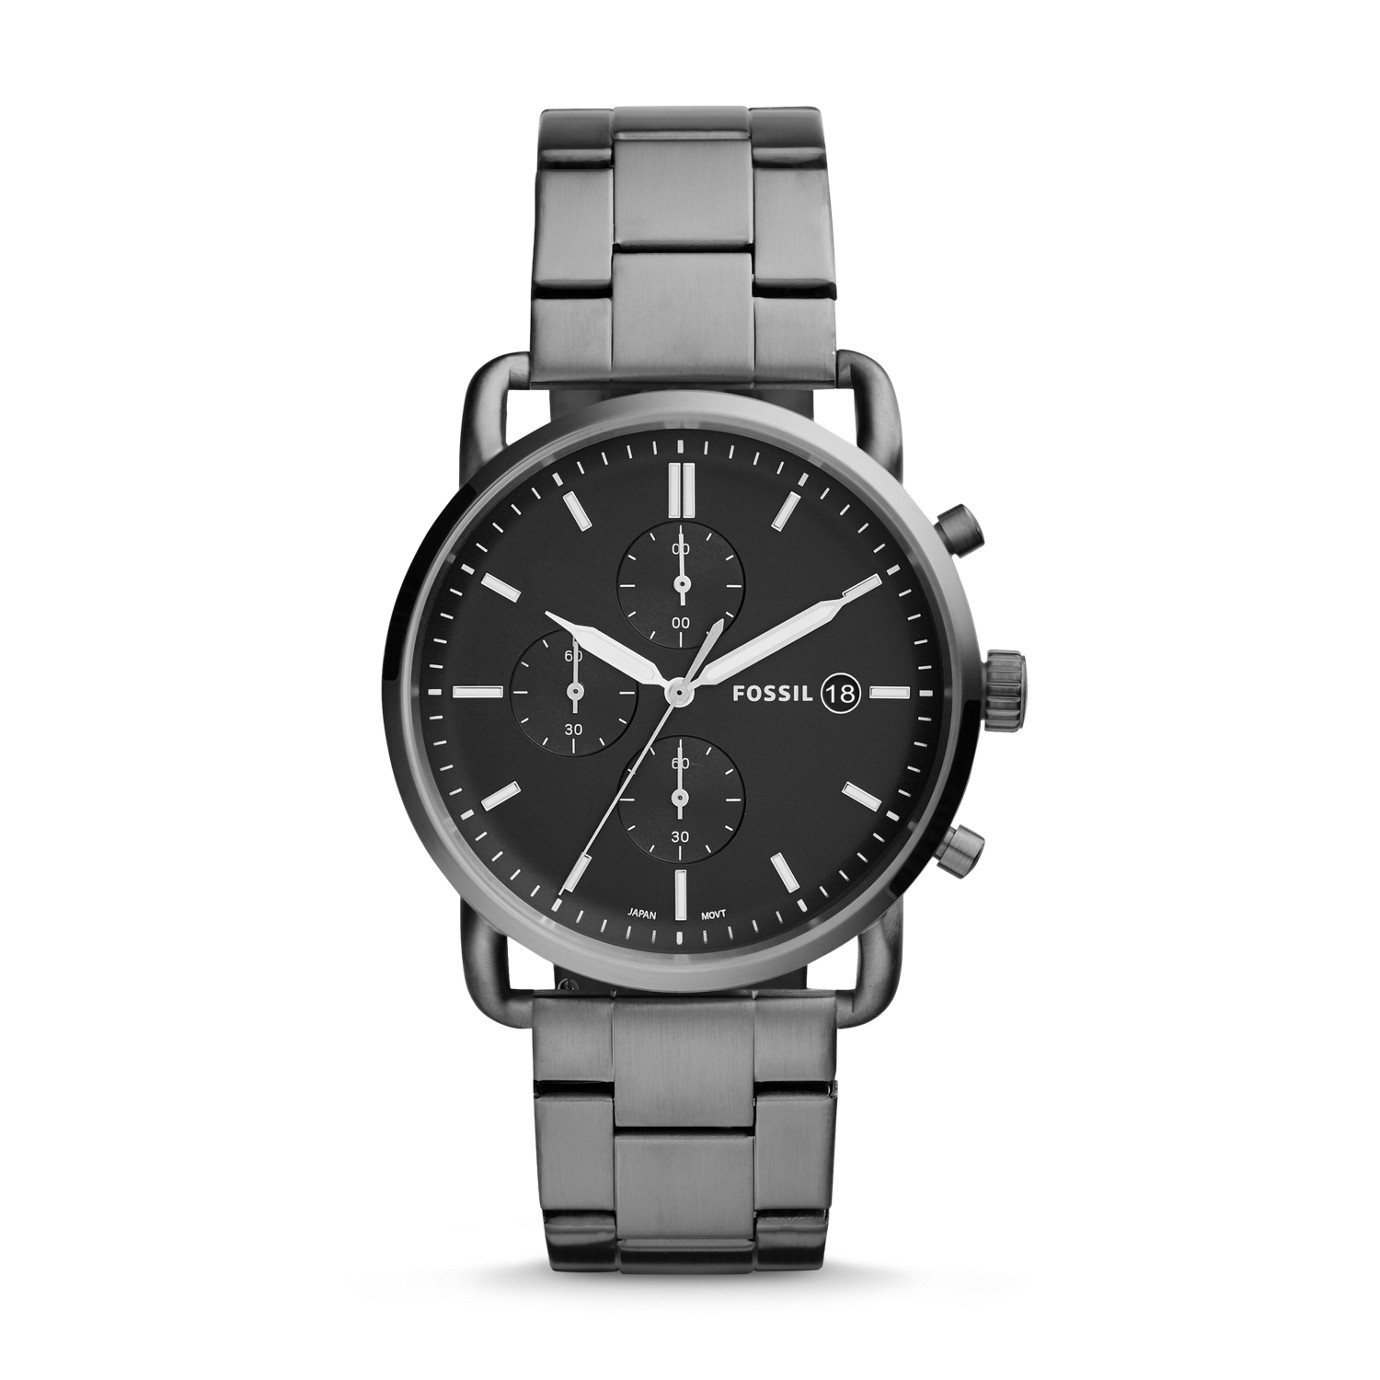 The Commuter Chronograph Smoke Stainless Steel Watch